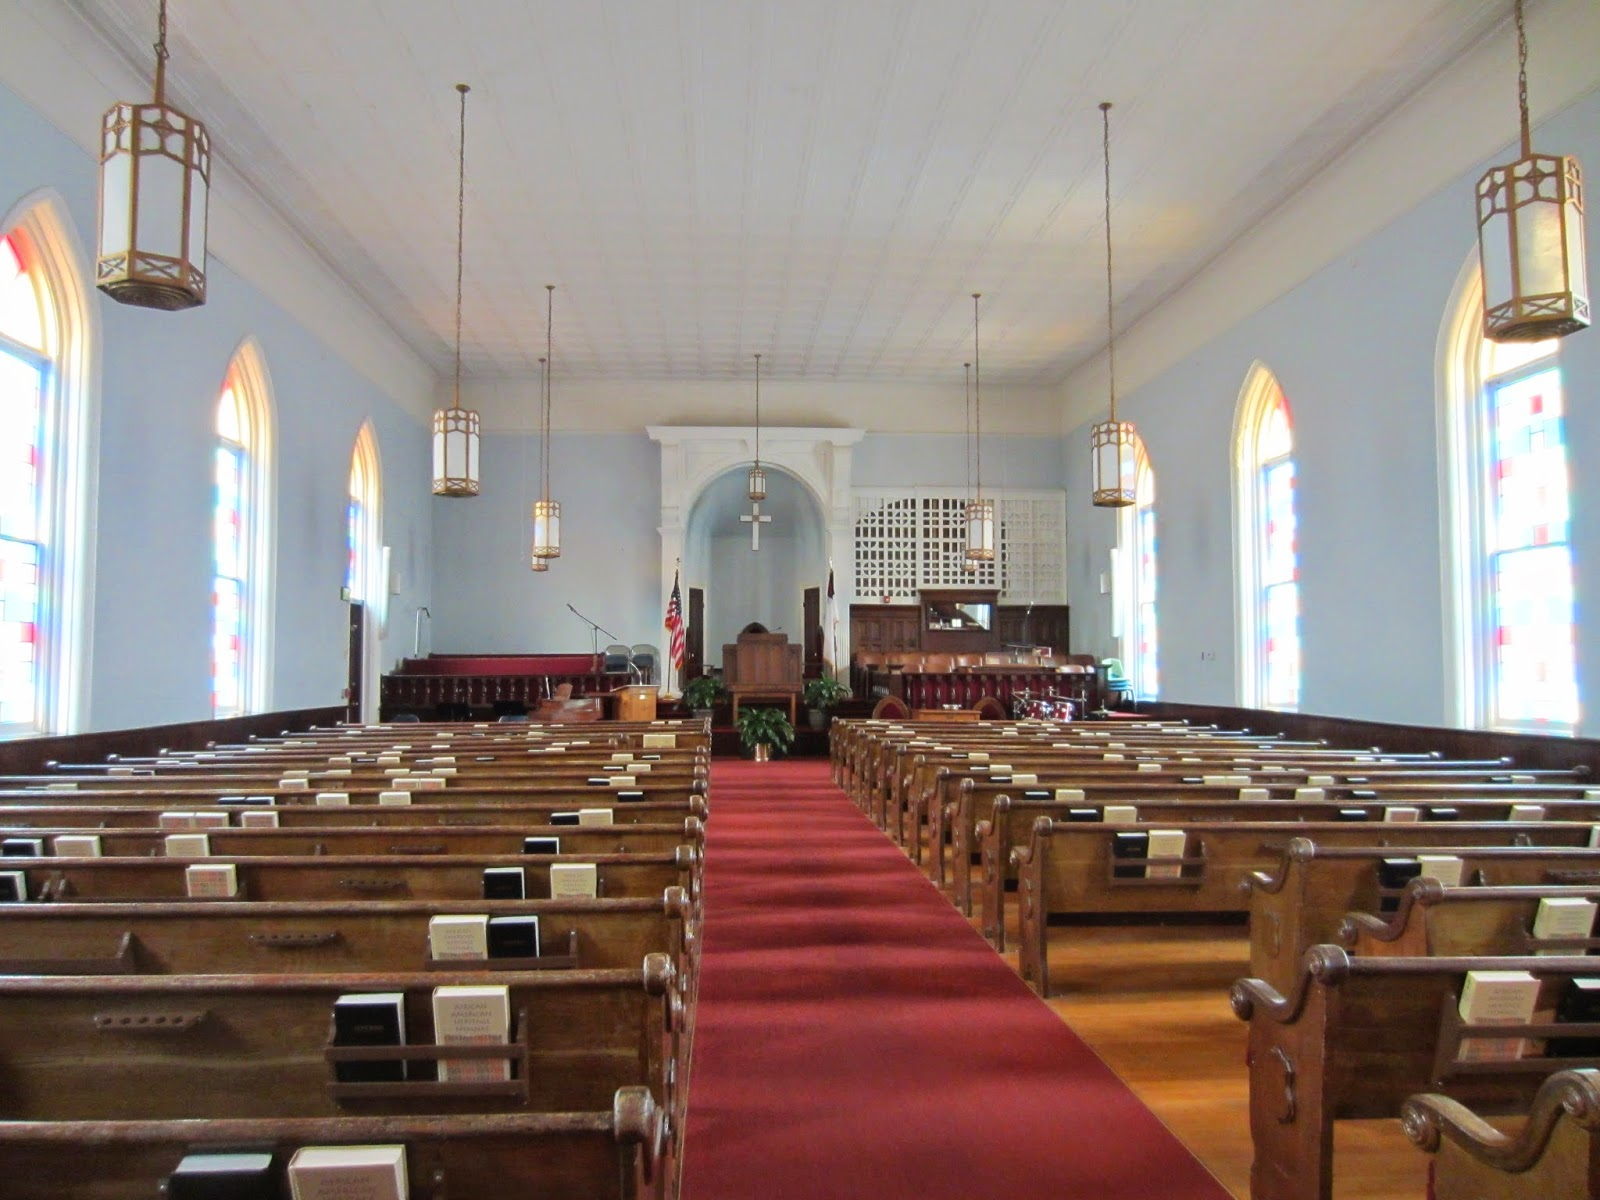 Dexter Avenue Baptist Church Interior, Montgomery, AL / Souvenir Chronicles